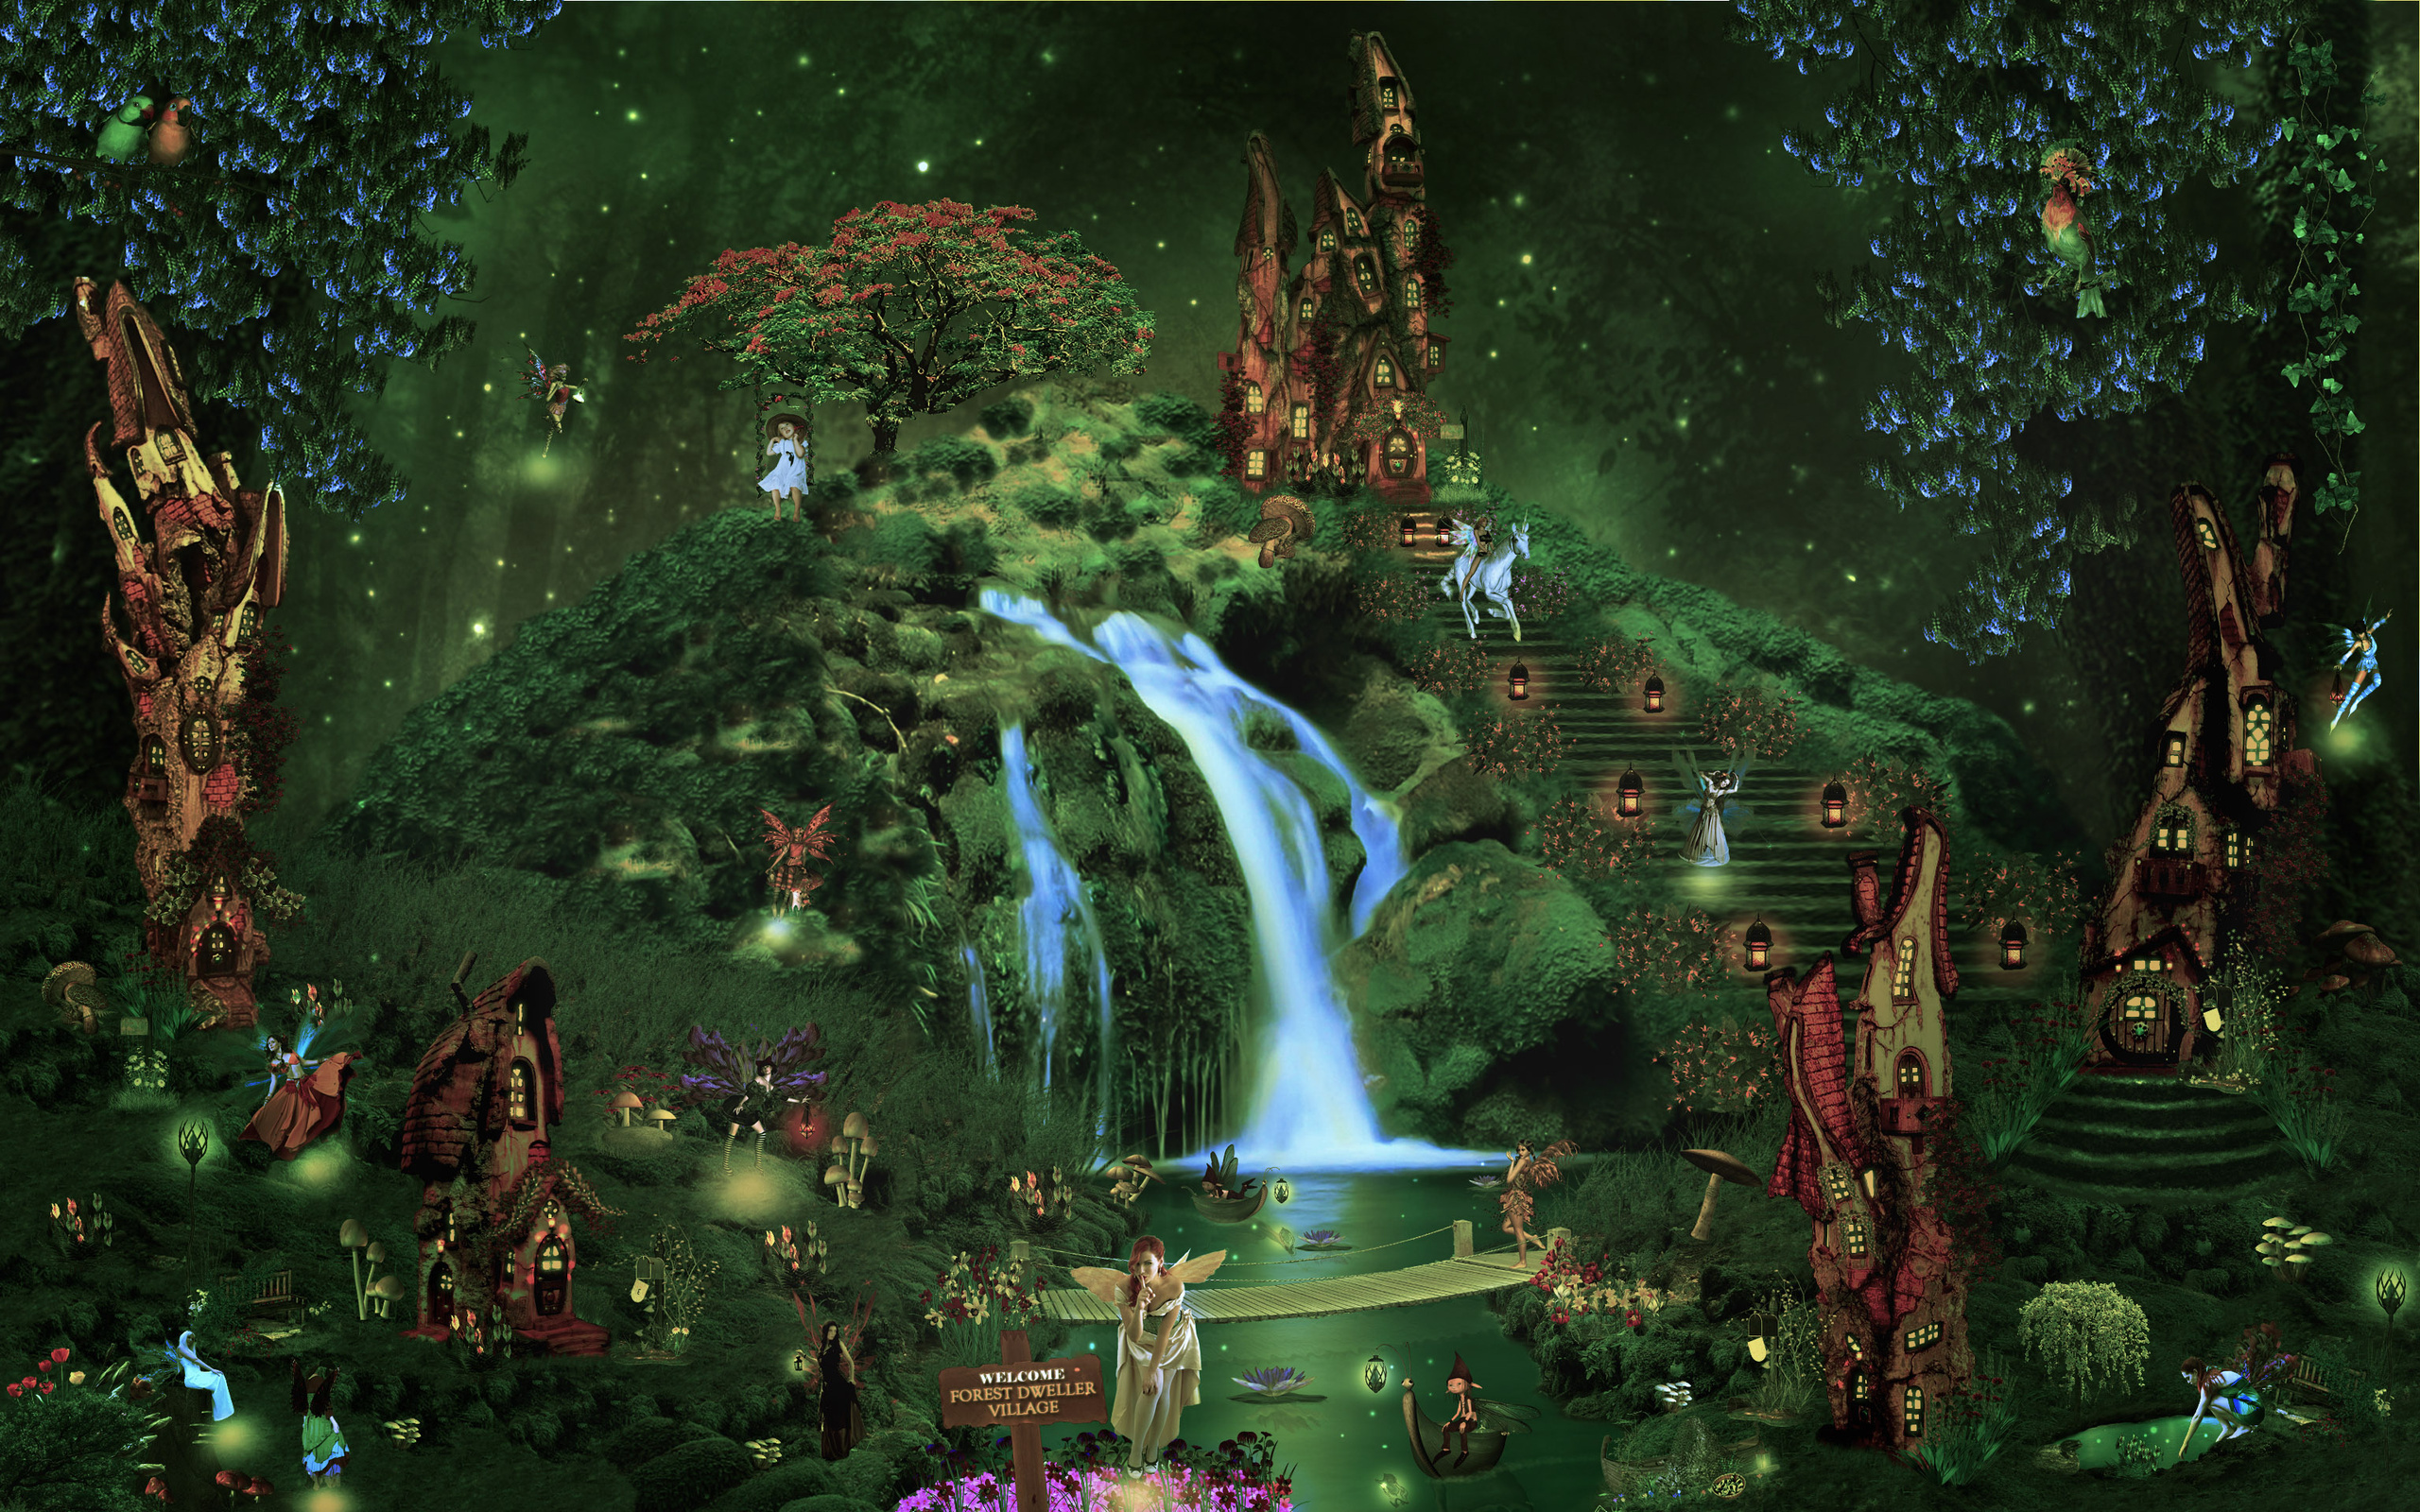 forest fairy wallpaper - photo #39